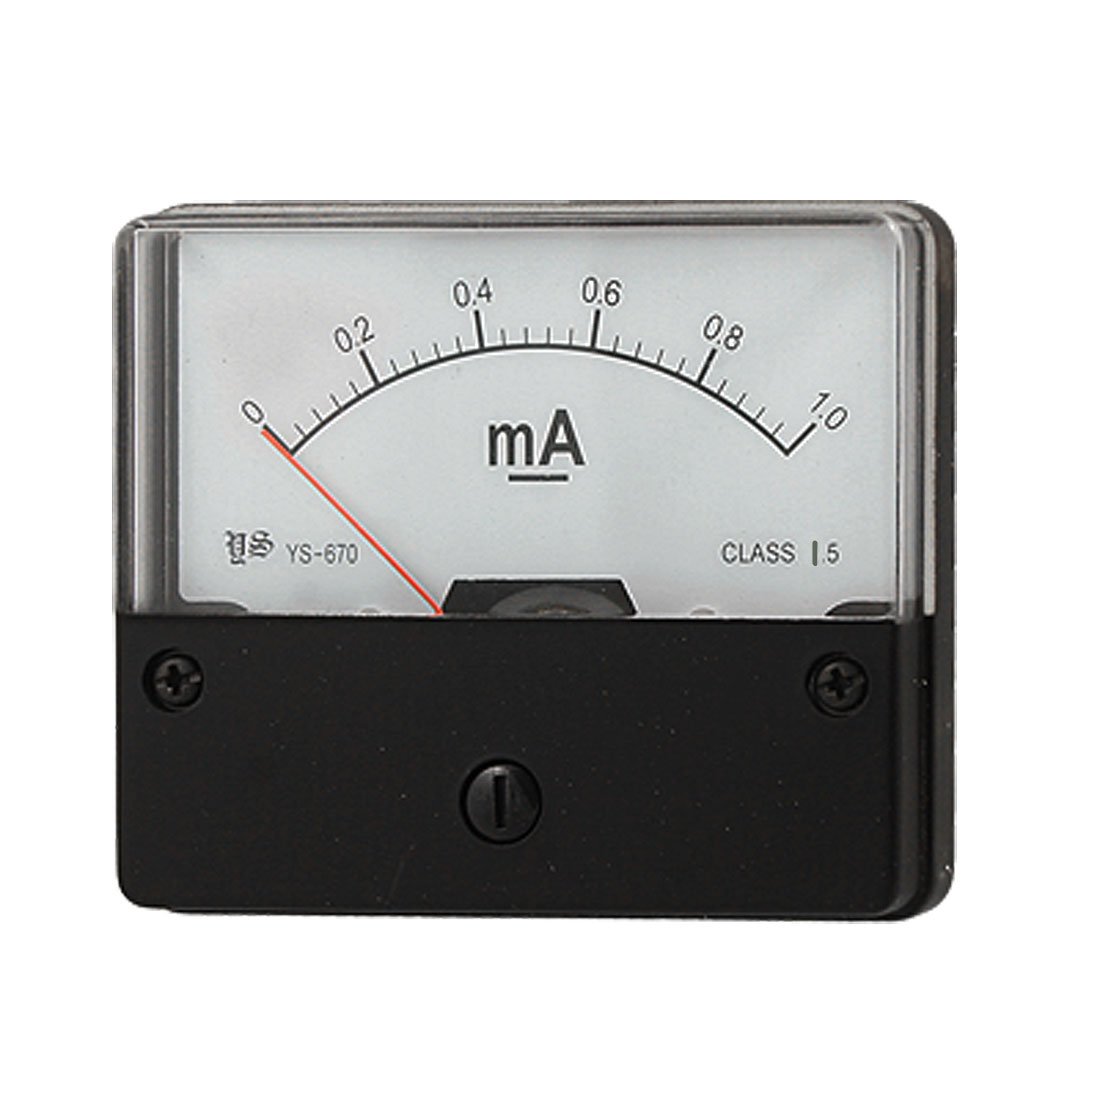 Plastic Housing DC 1mA Analog Current Panel Meter Tool